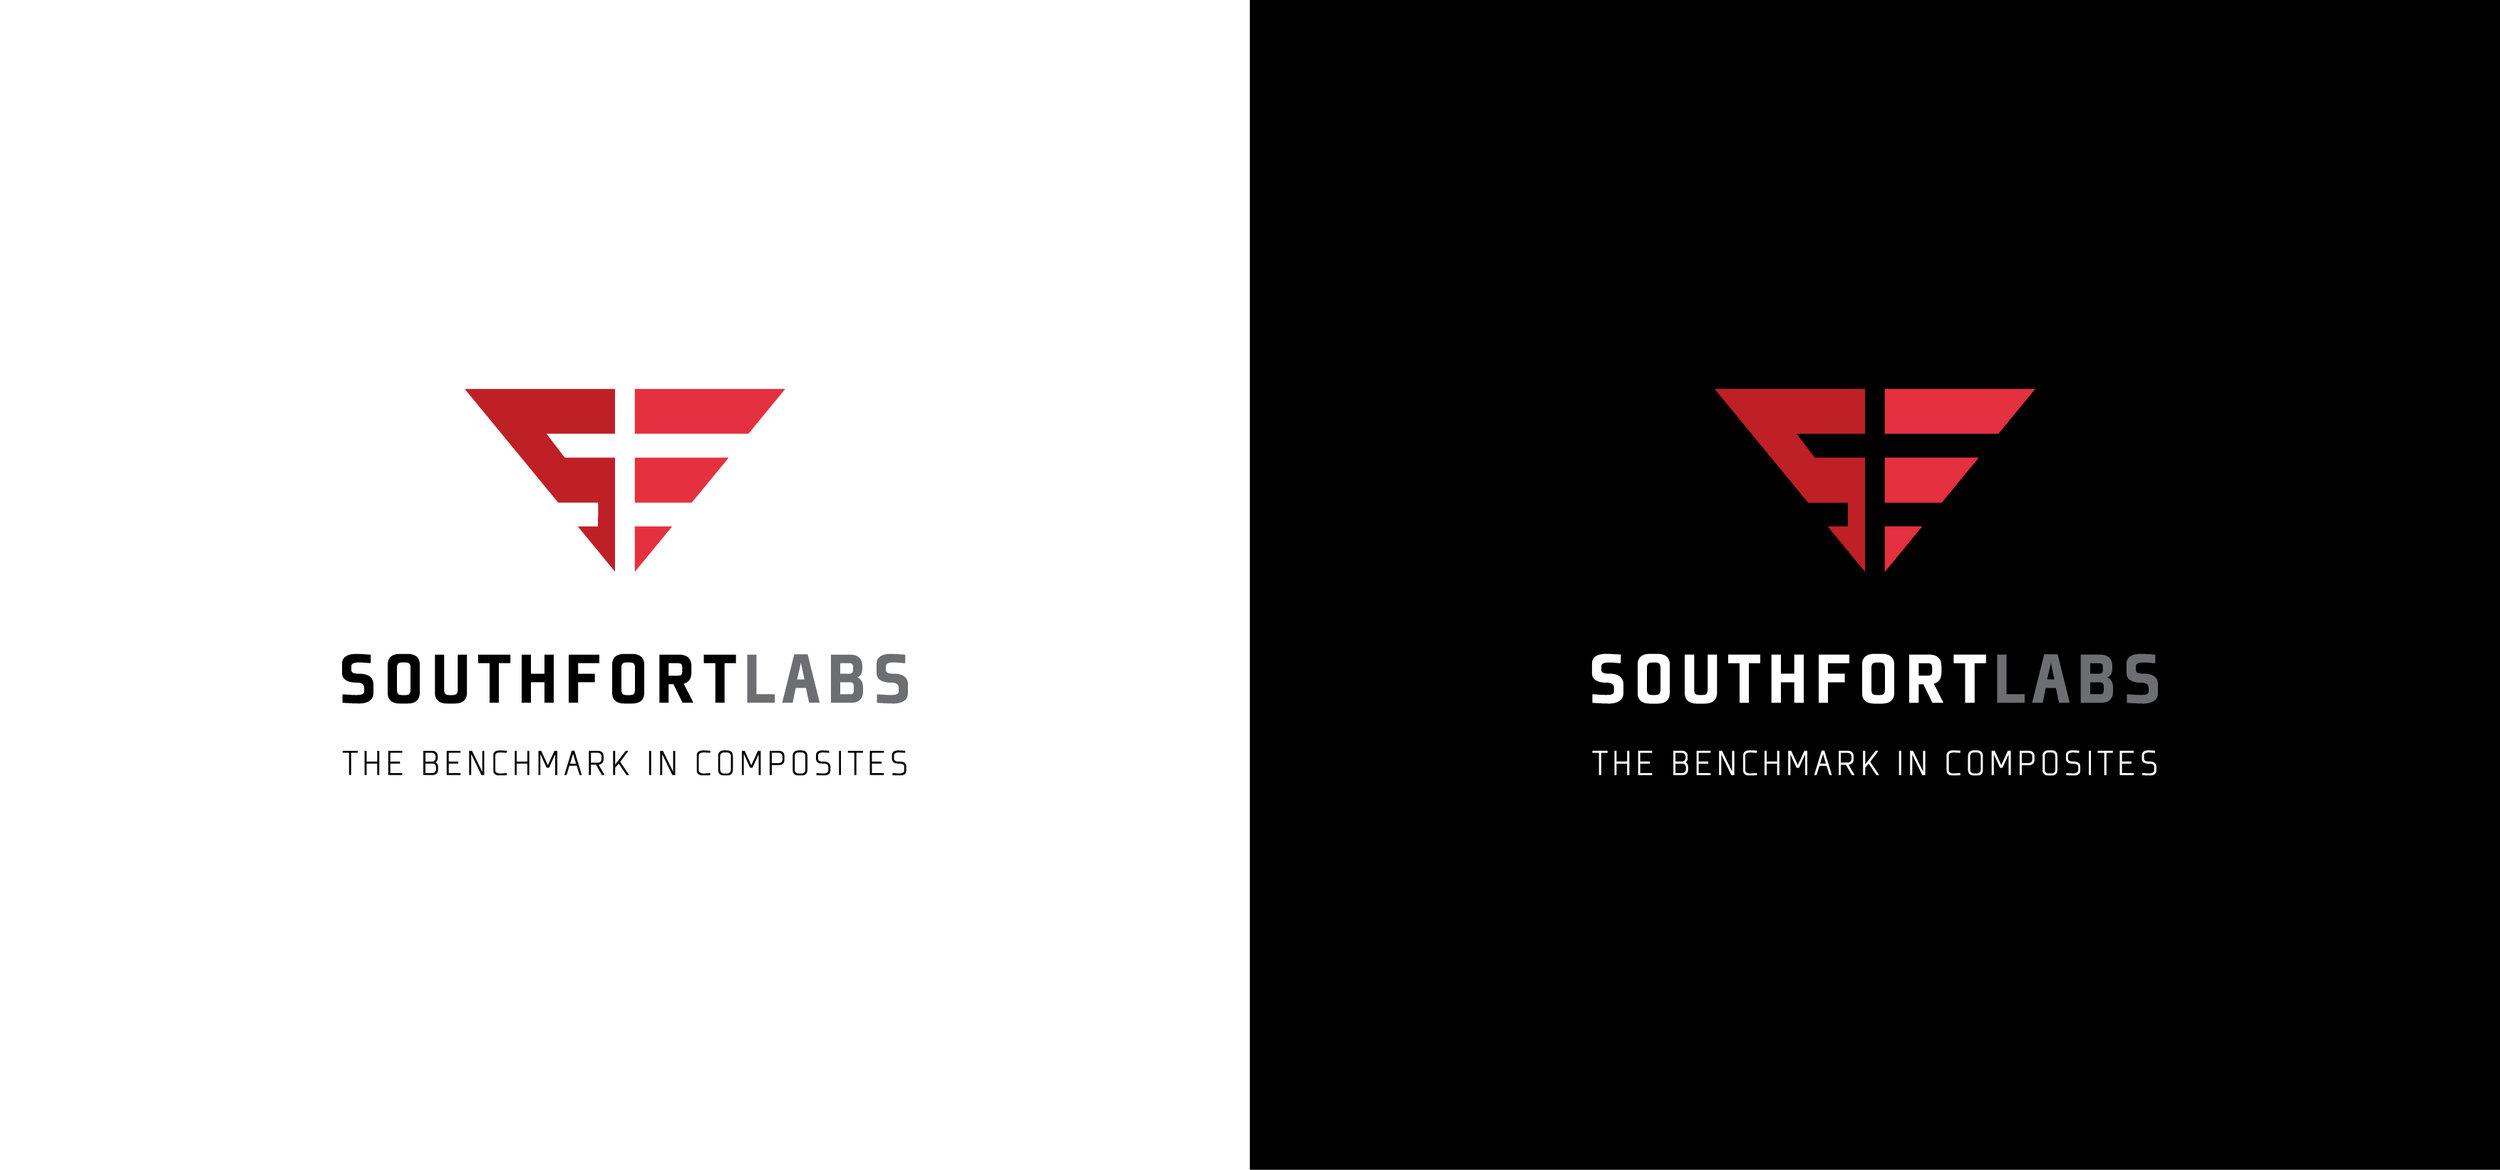 Commercial Interiors branding website design - Southfort Labs